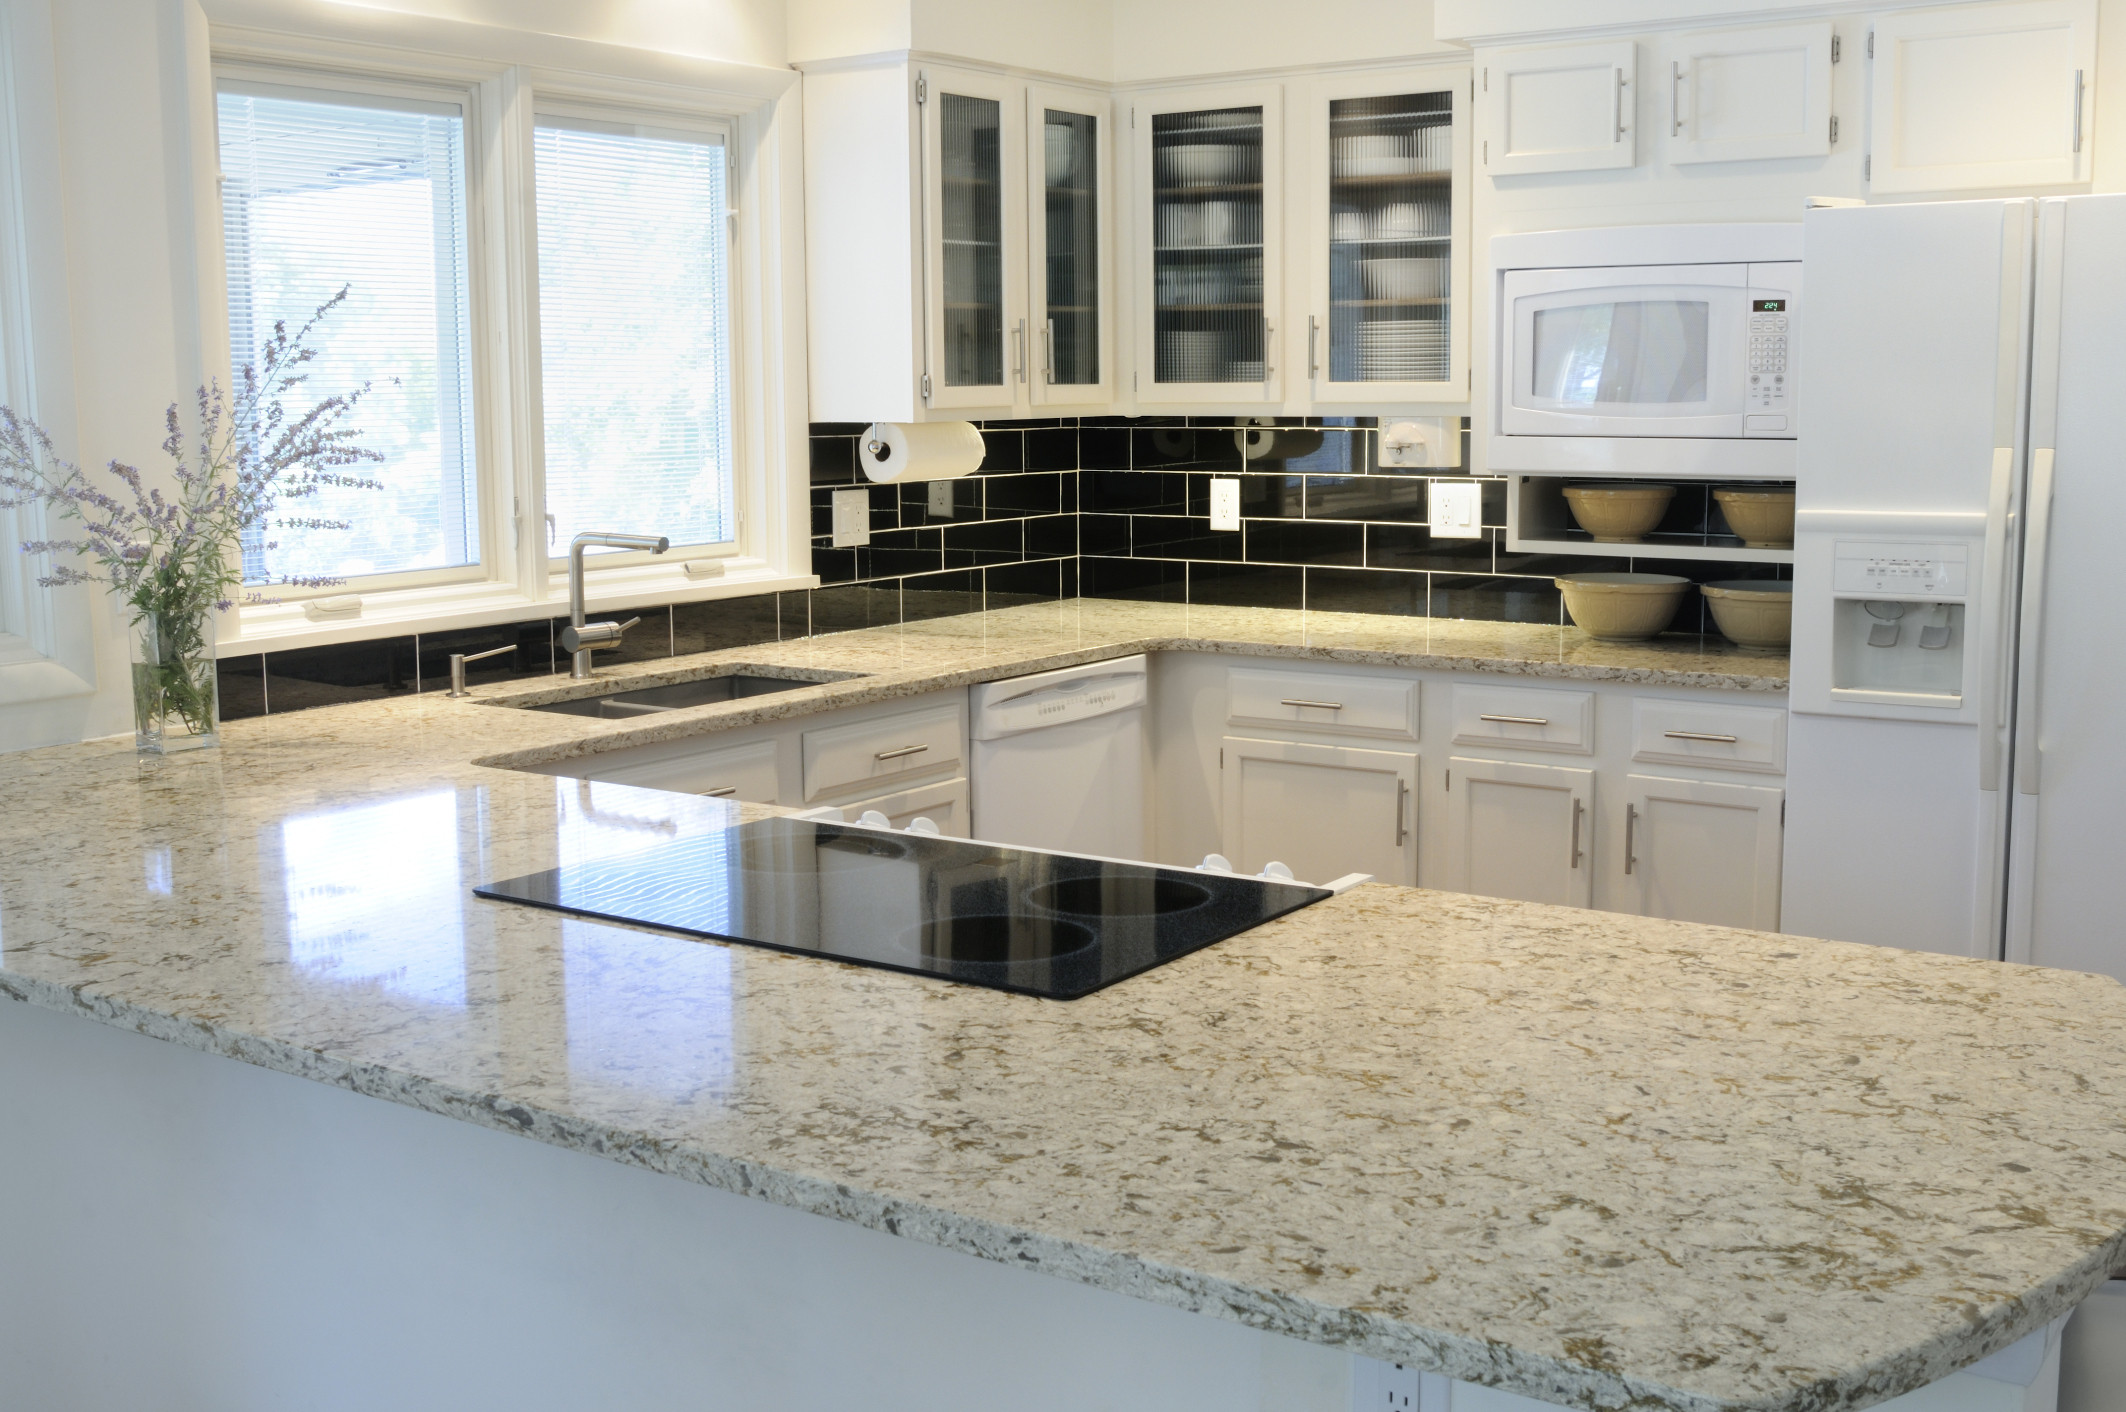 Marble kitchen countertops pros and cons - Quartzite Countertops Pros And Cons